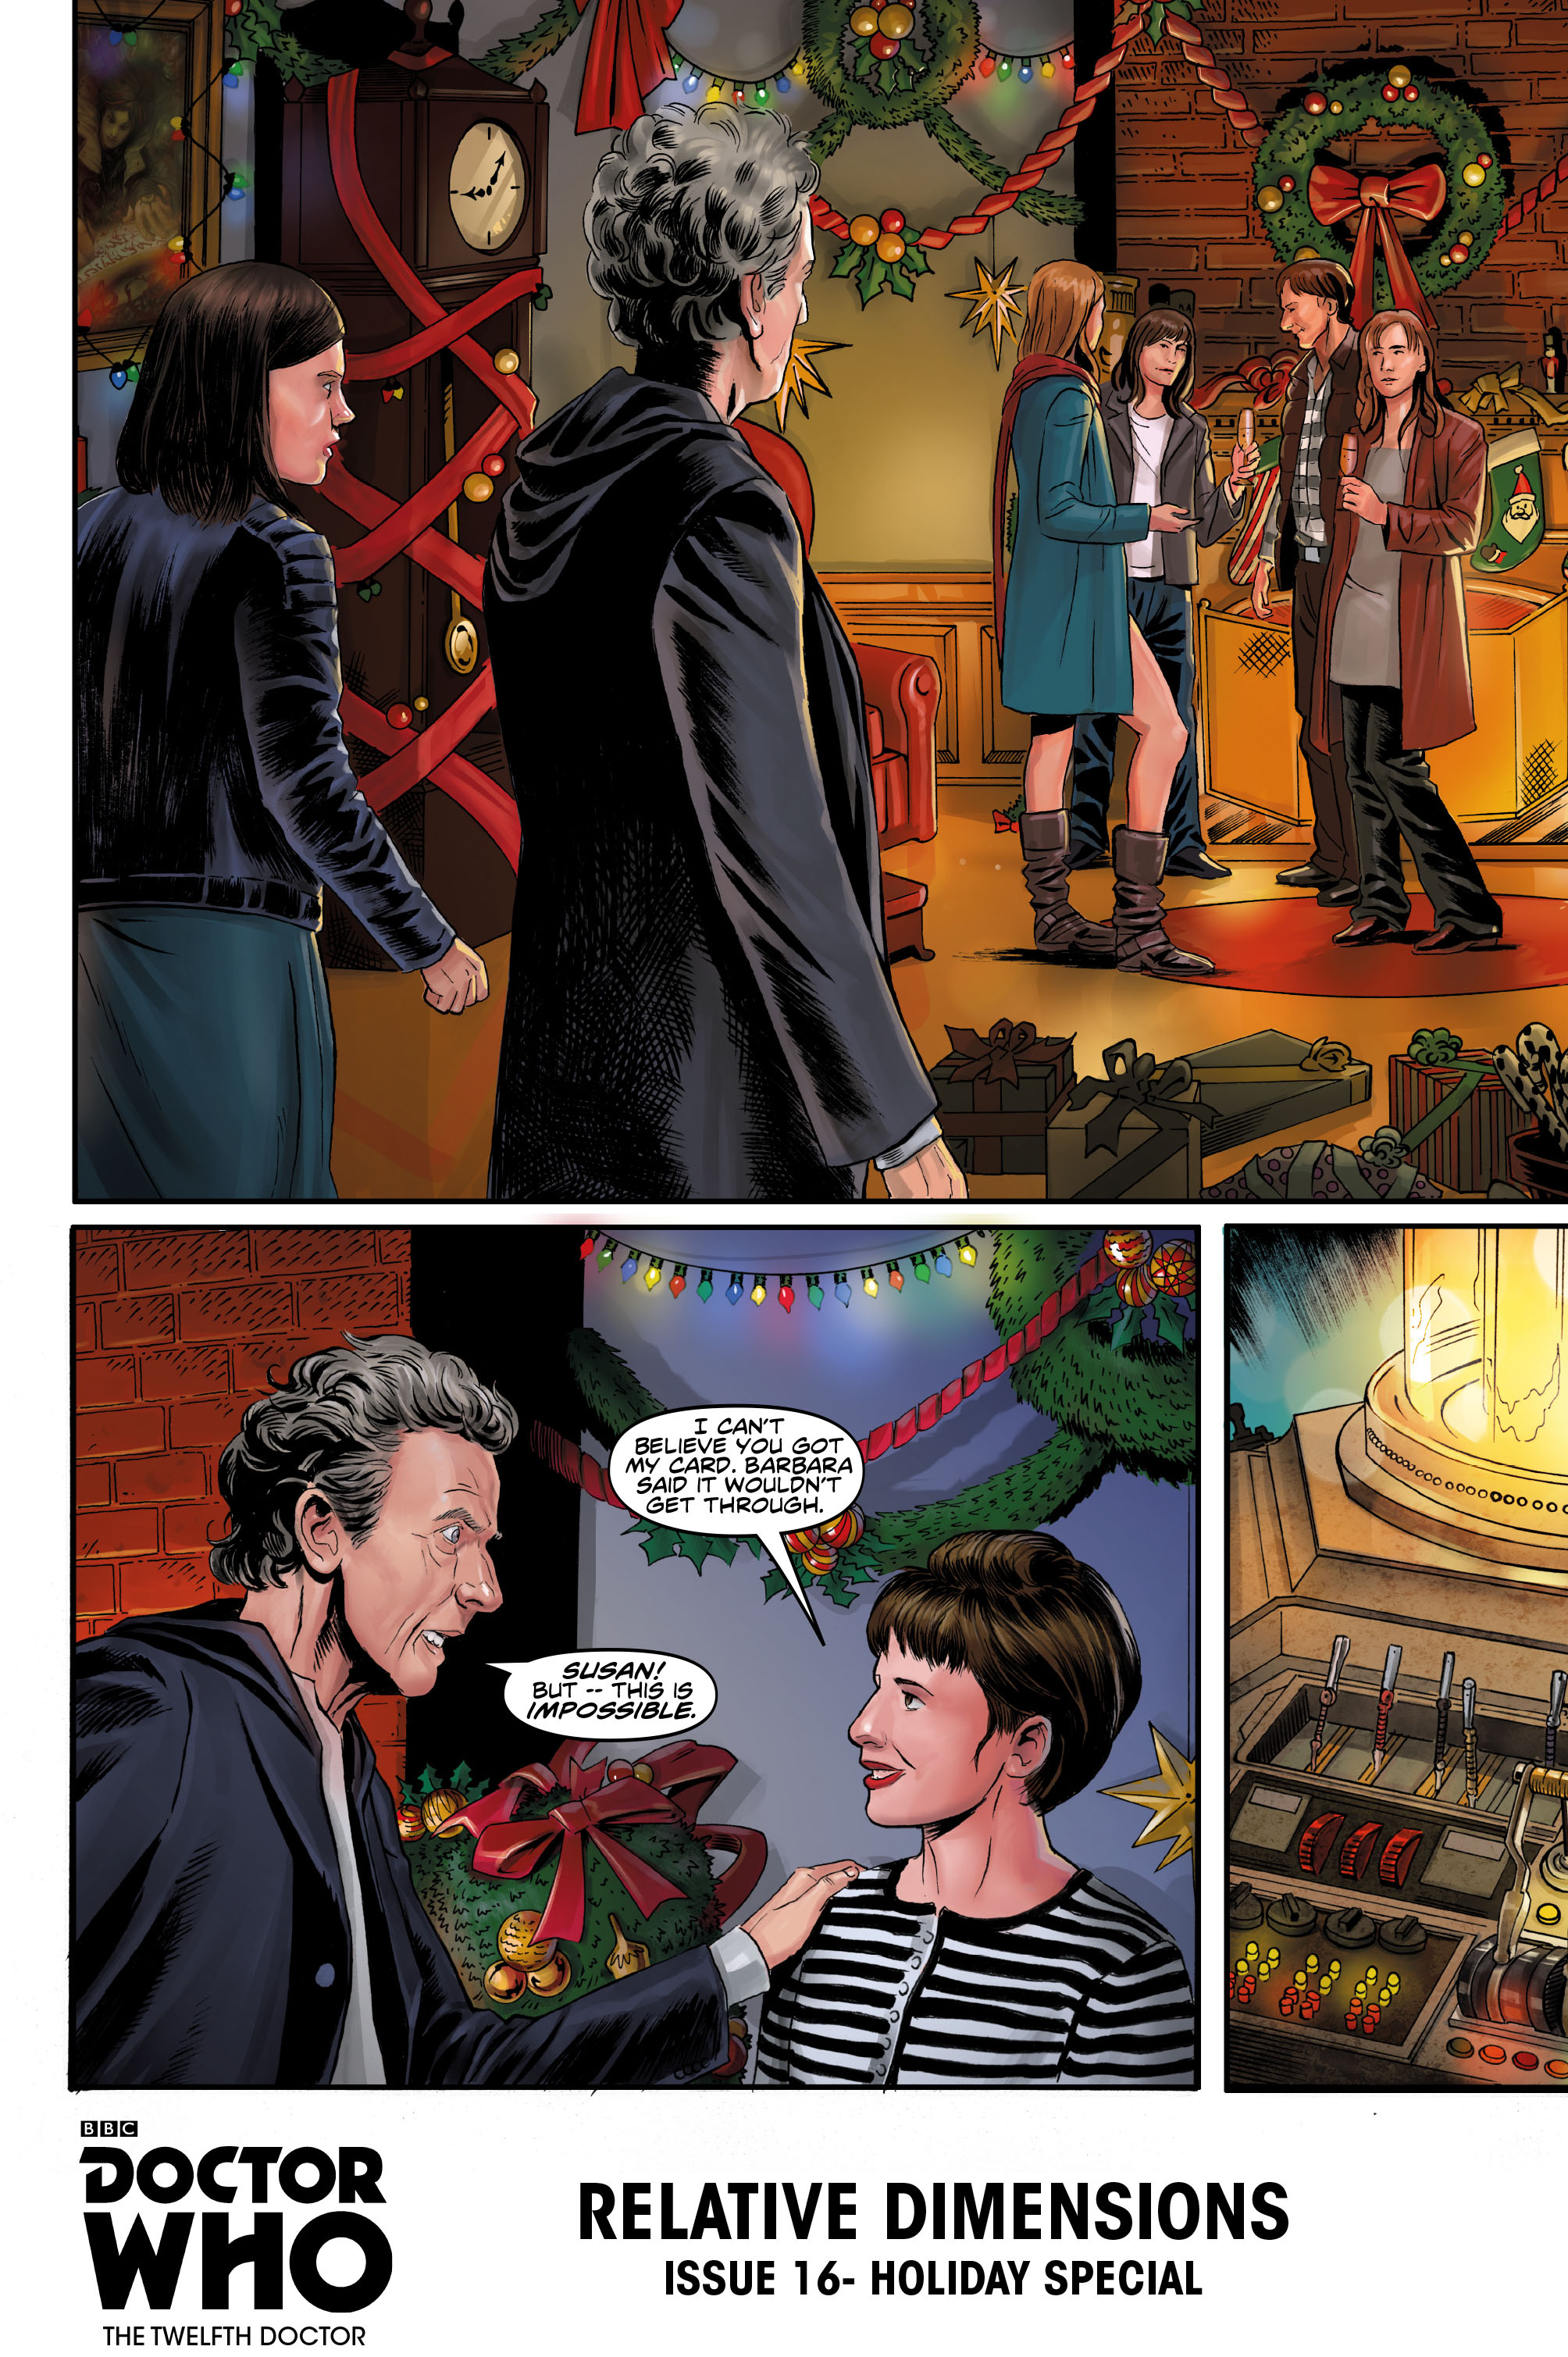 Doctor Who Christmas Special 2015.Comic Book Preview Doctor Who The Twelfth Doctor Christmas